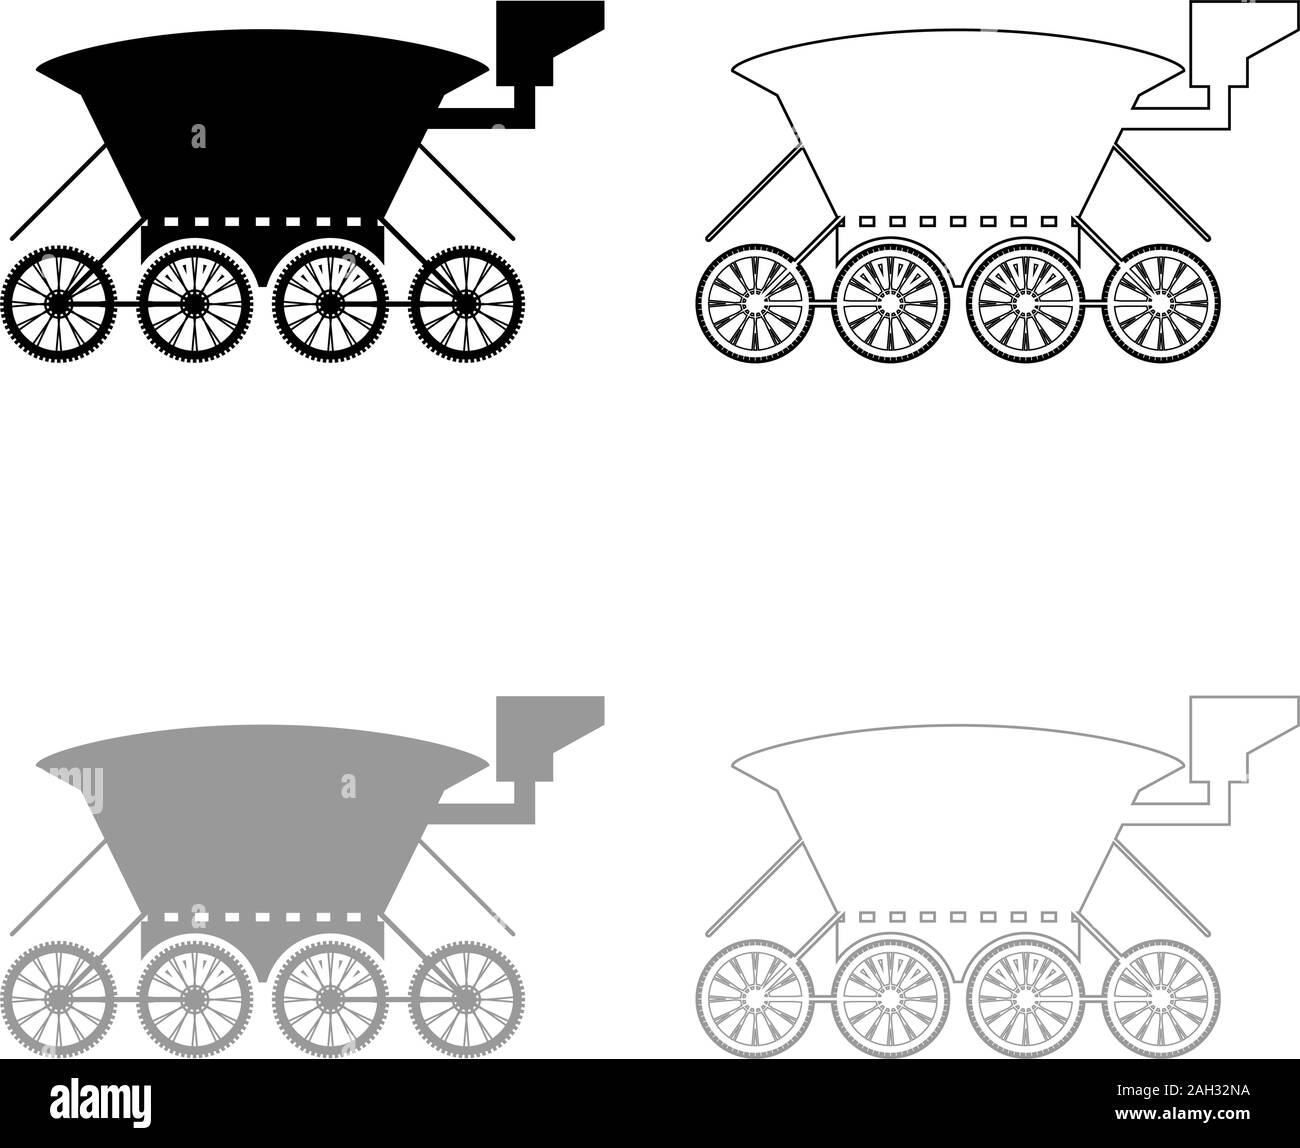 Moon rover Mars explorer Space machine Planets vehicle icon outline set black grey color vector illustration flat style simple image Stock Vector